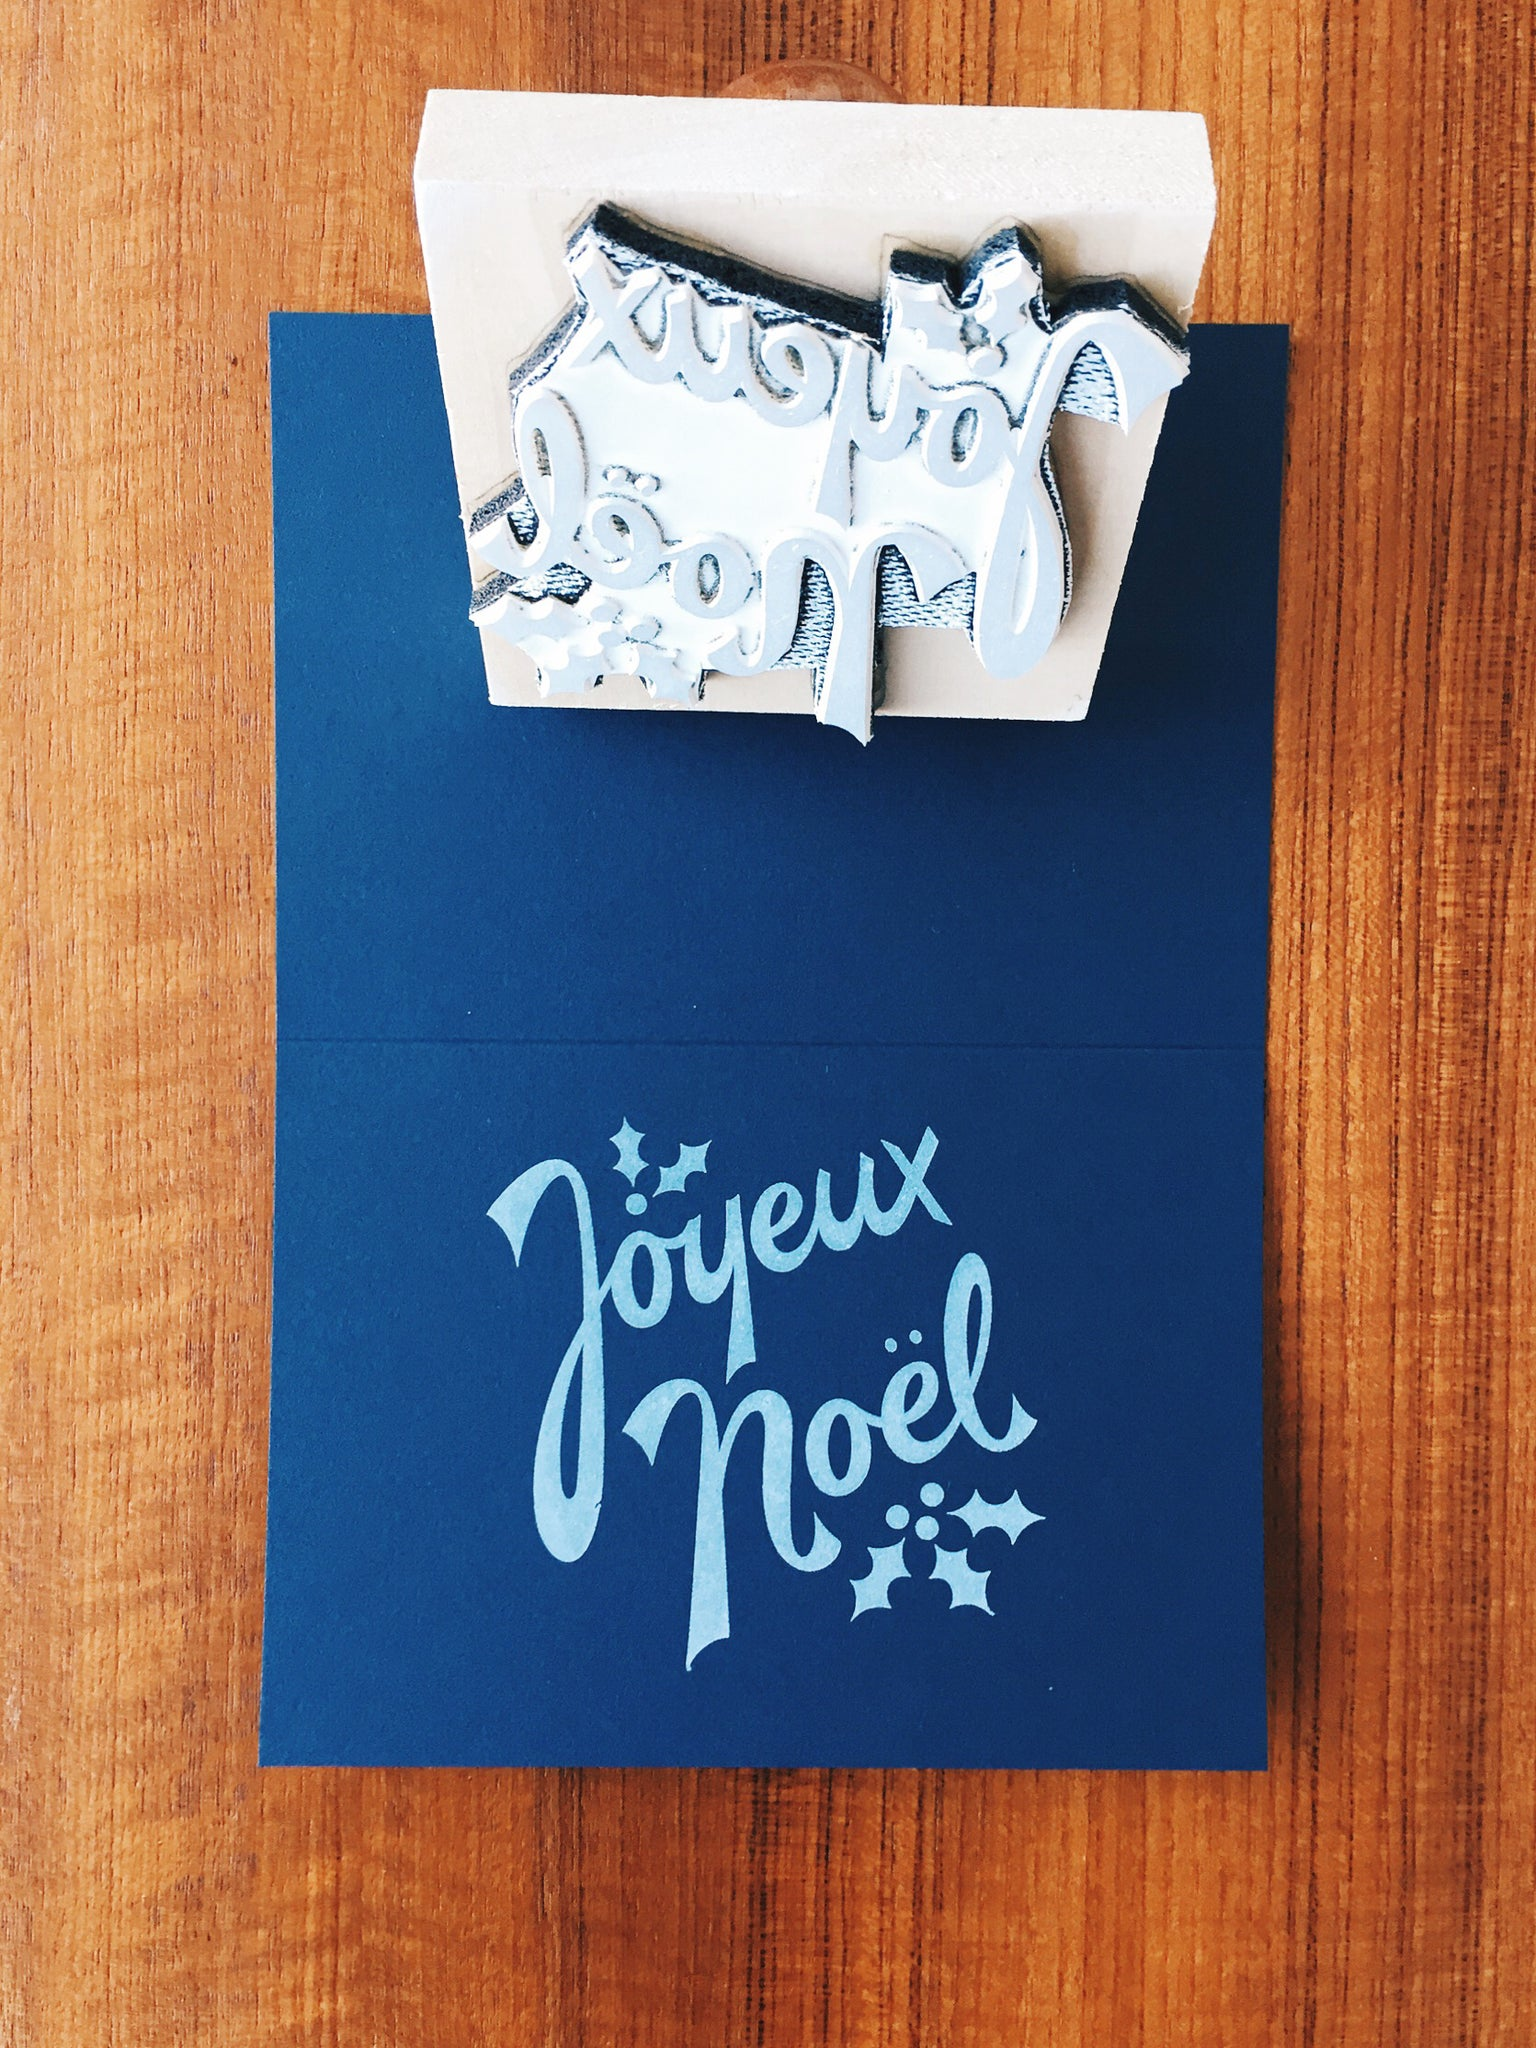 Joyeux Noël and Lumi rubber stamp.